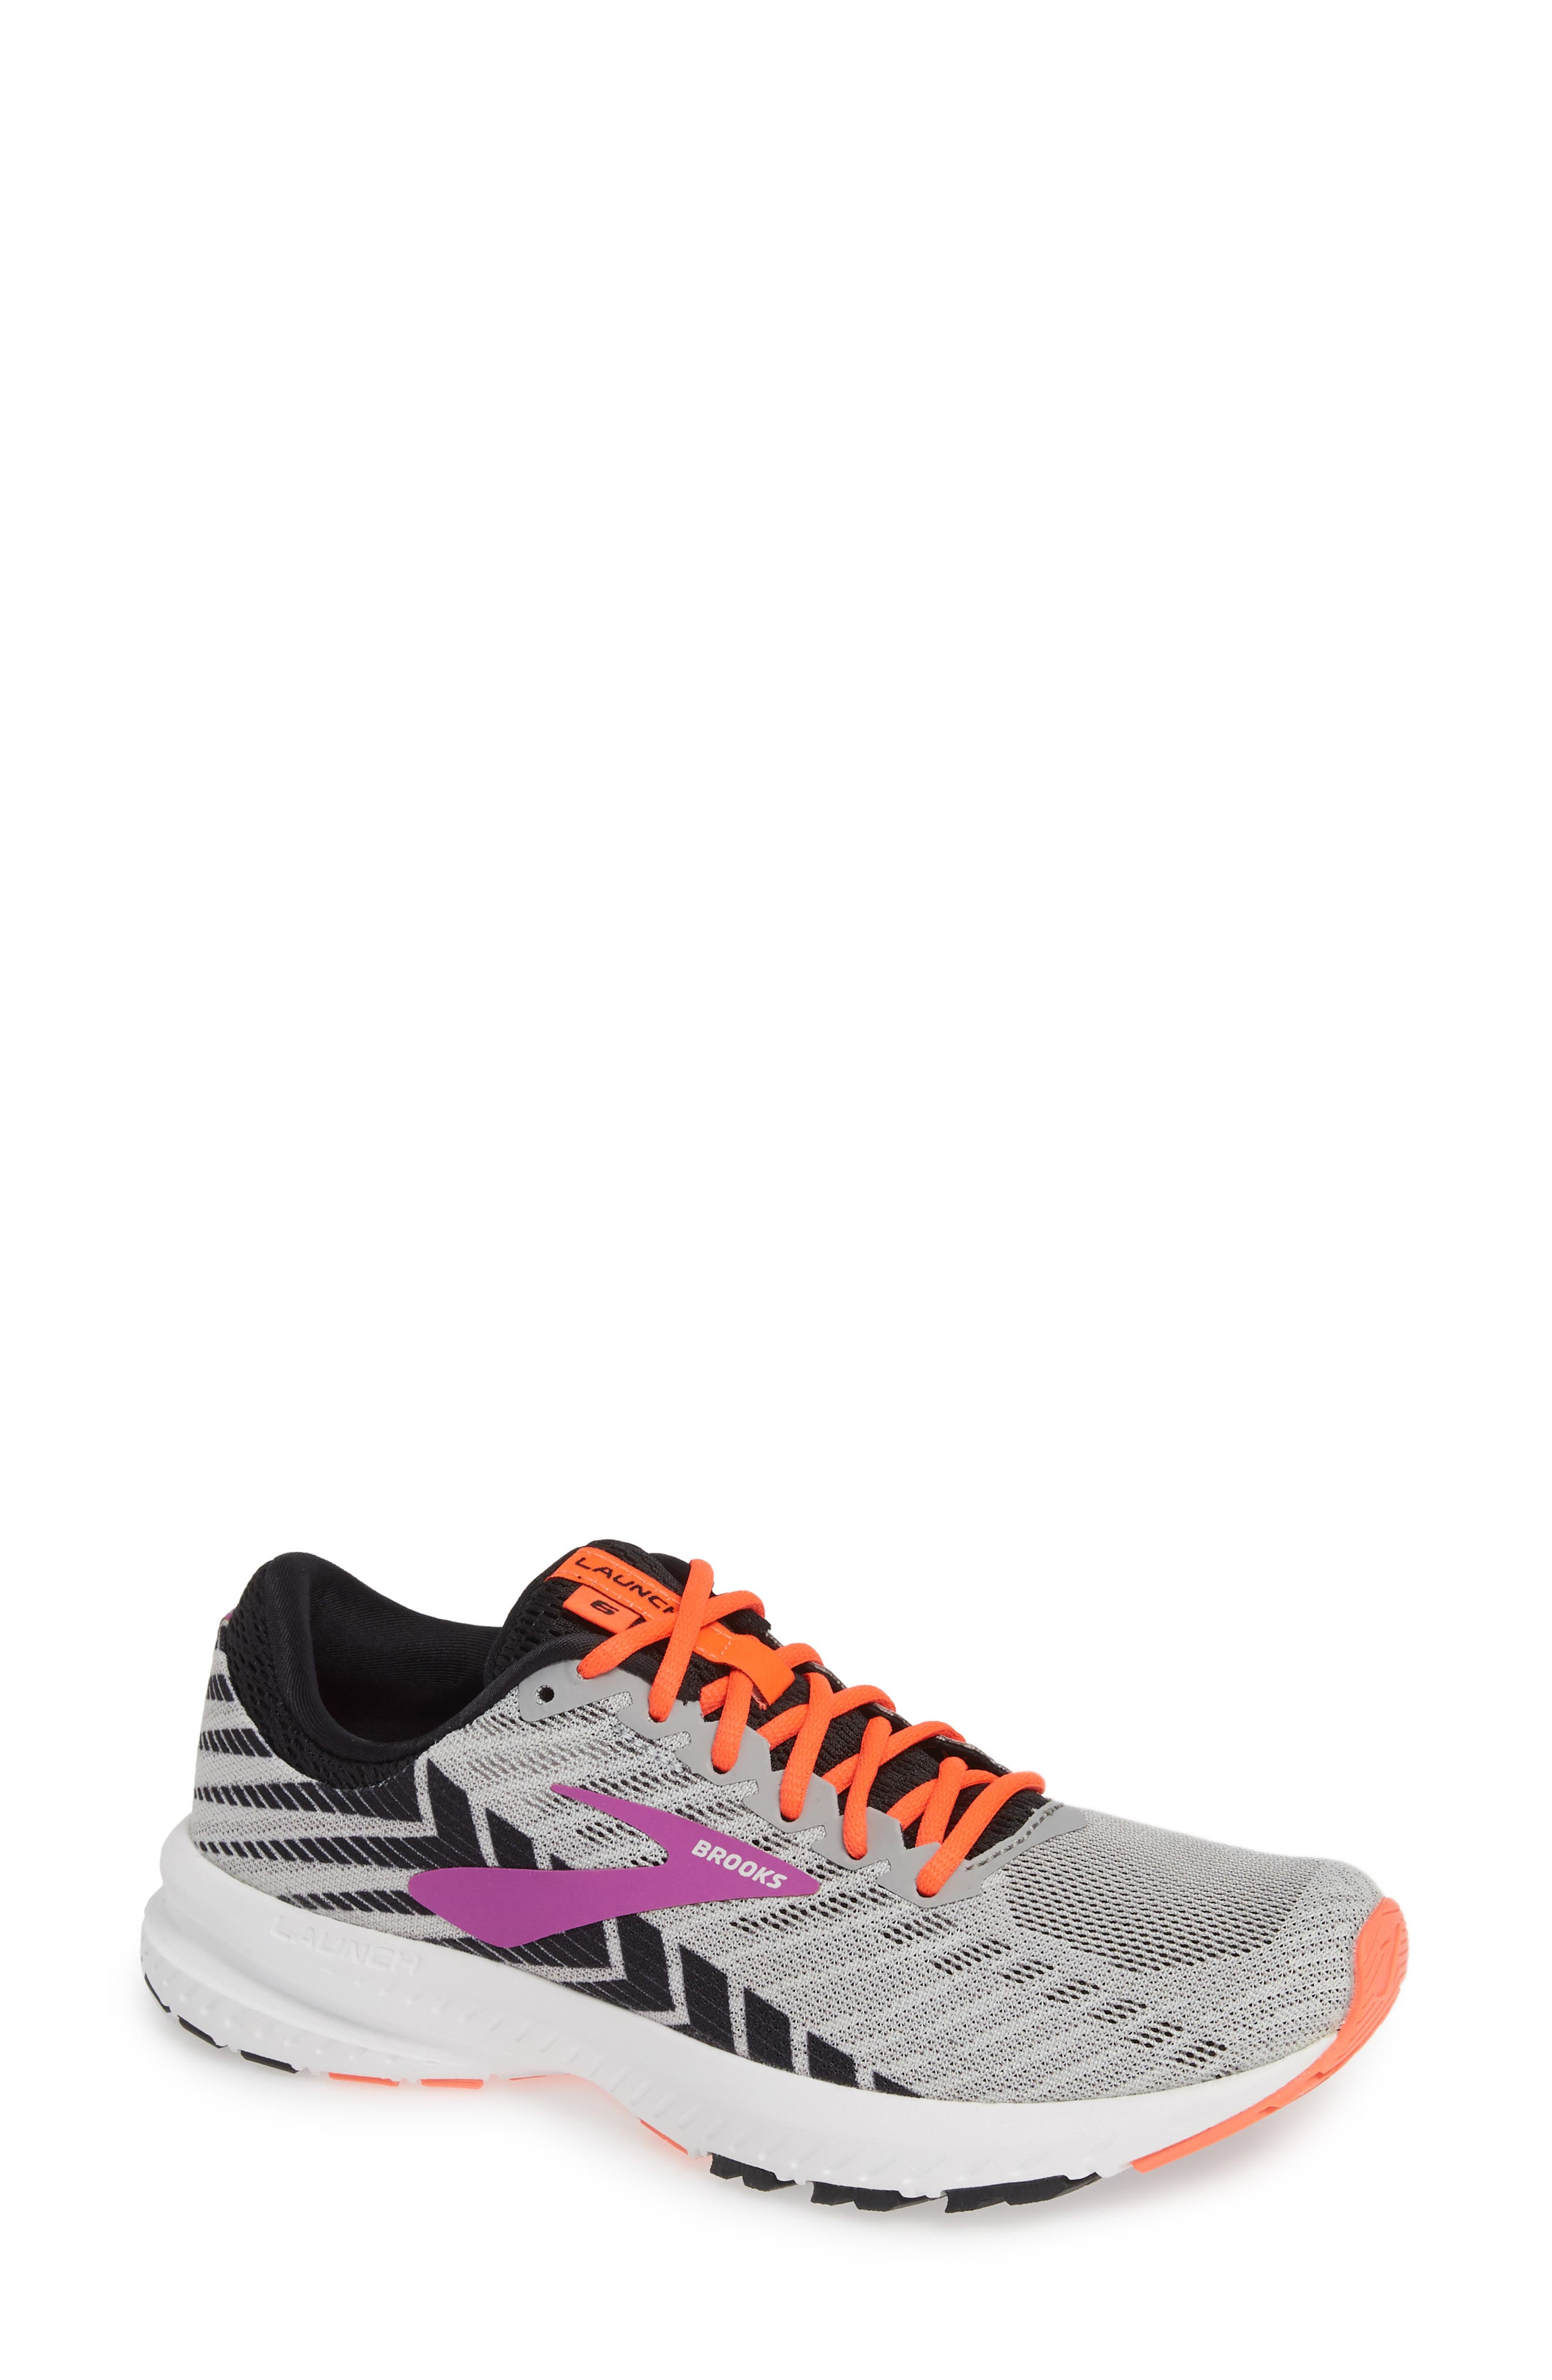 BROOKS Launch 6 Running Shoe, Main, color, GREY/ BLACK/ PURPLE